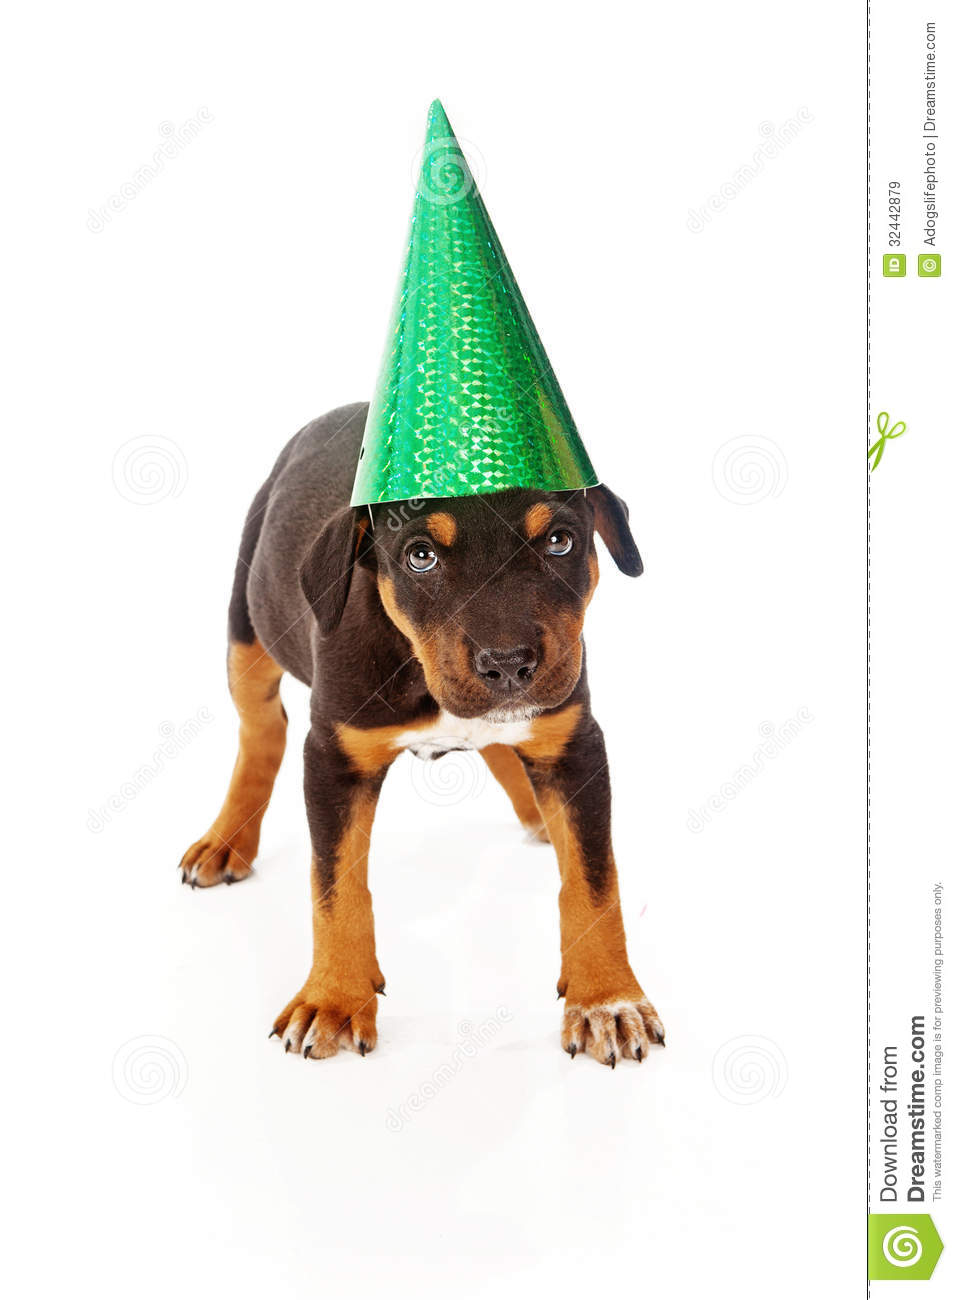 Puppy wearing green party hat